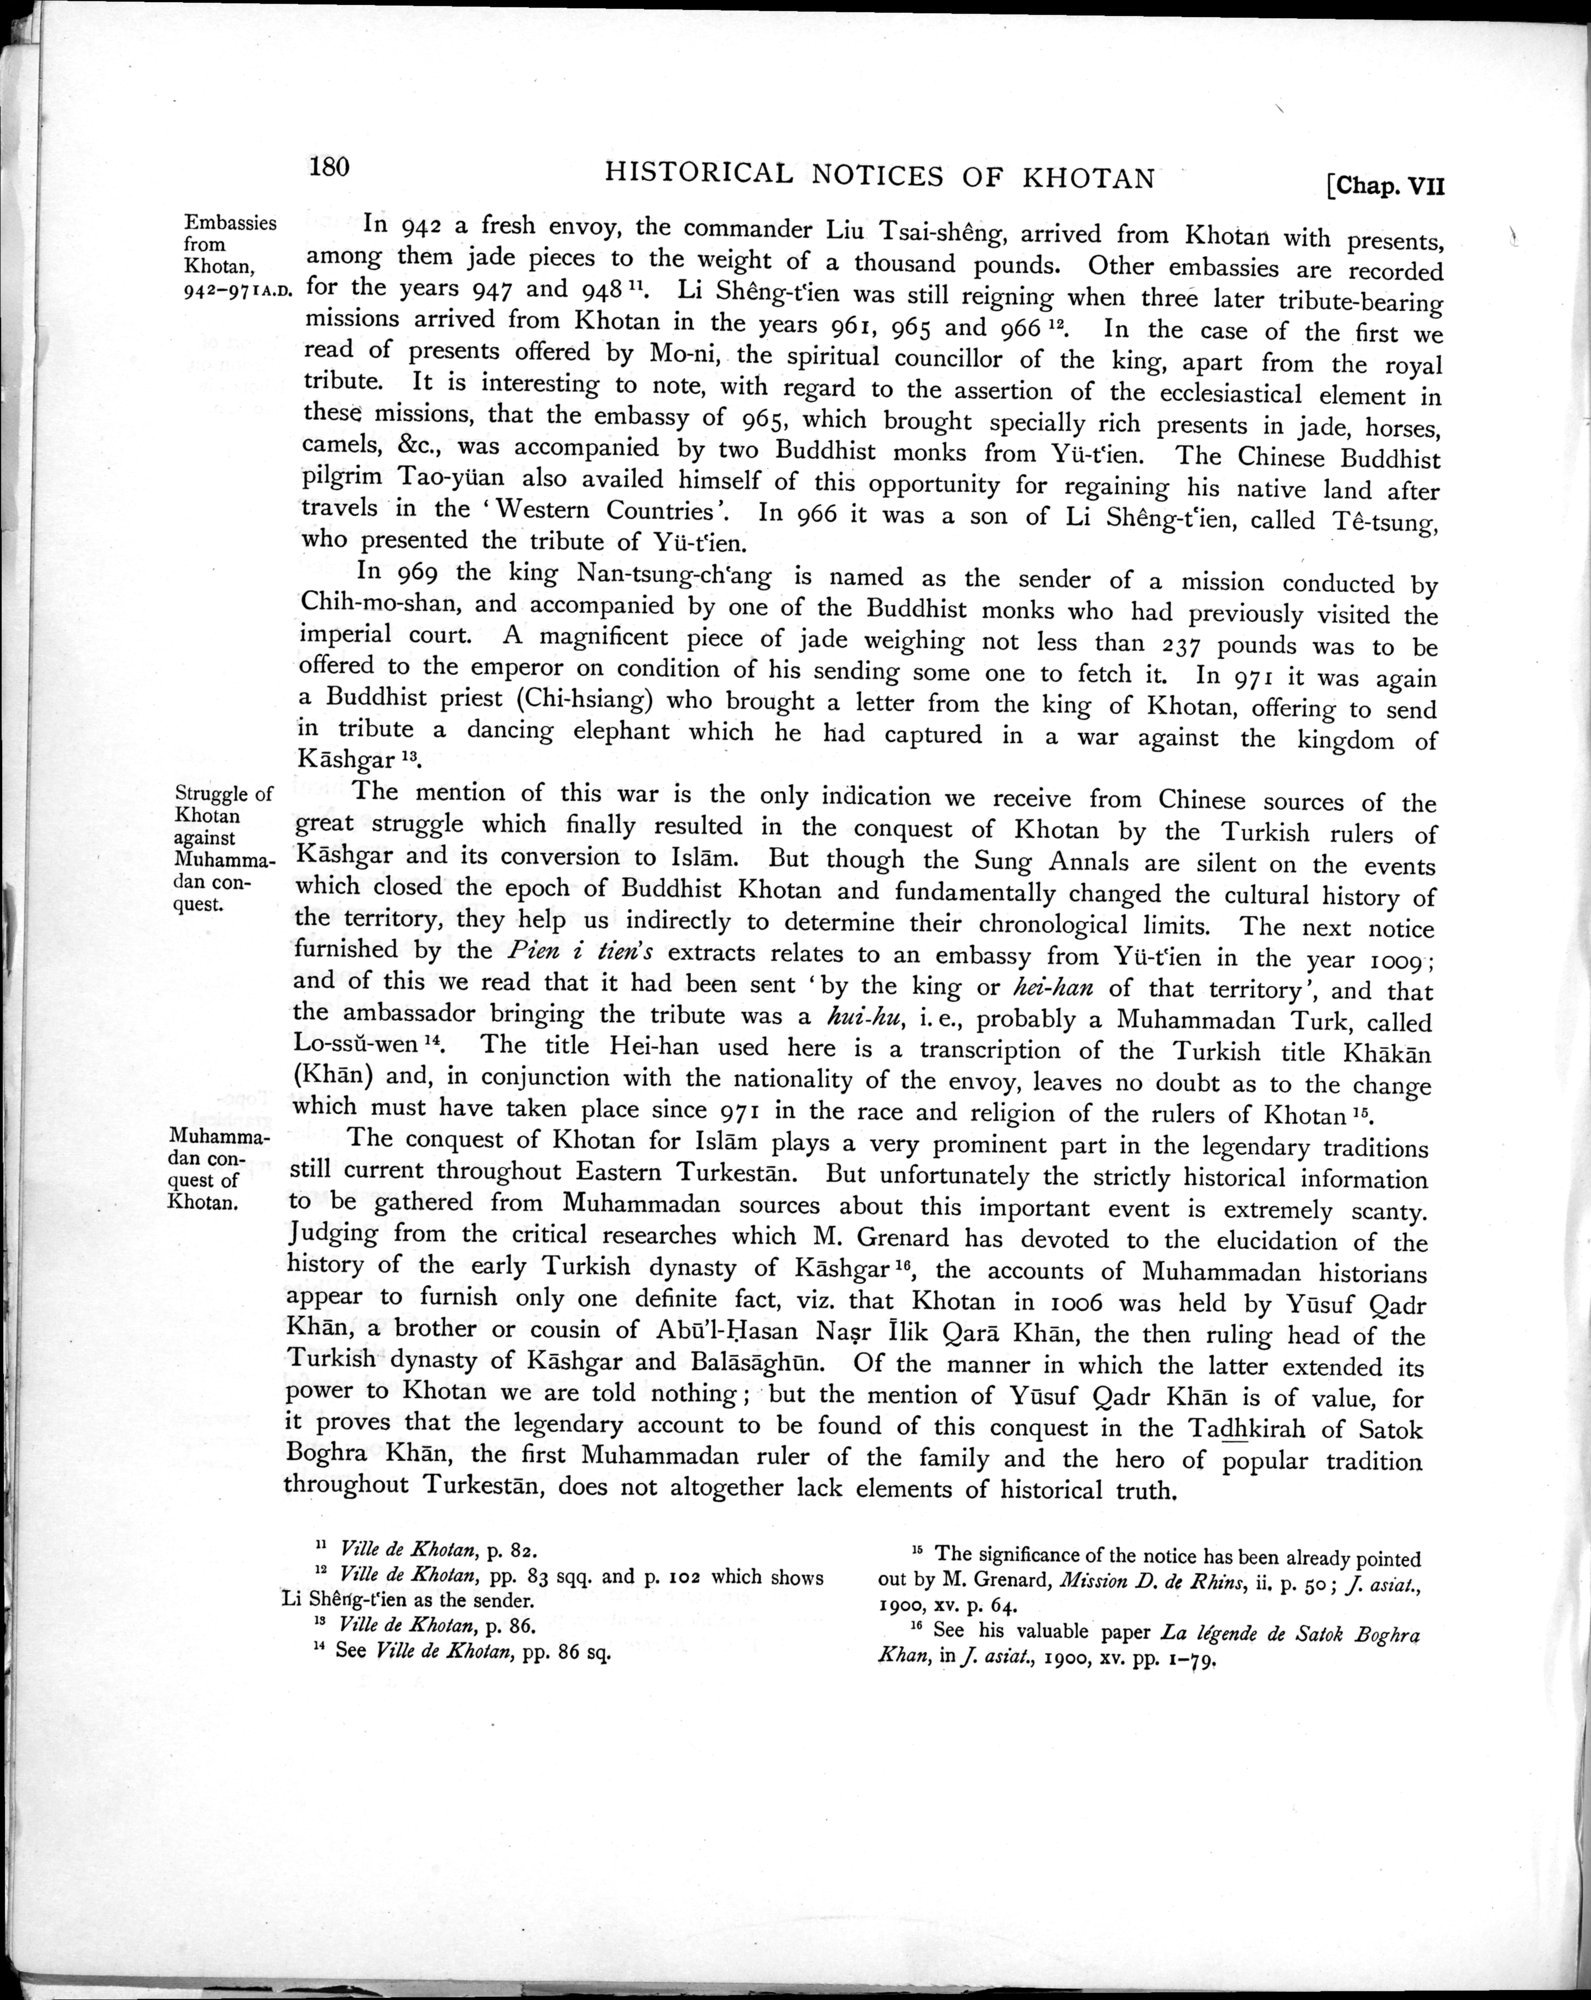 Ancient Khotan : vol.1 / Page 230 (Grayscale High Resolution Image)